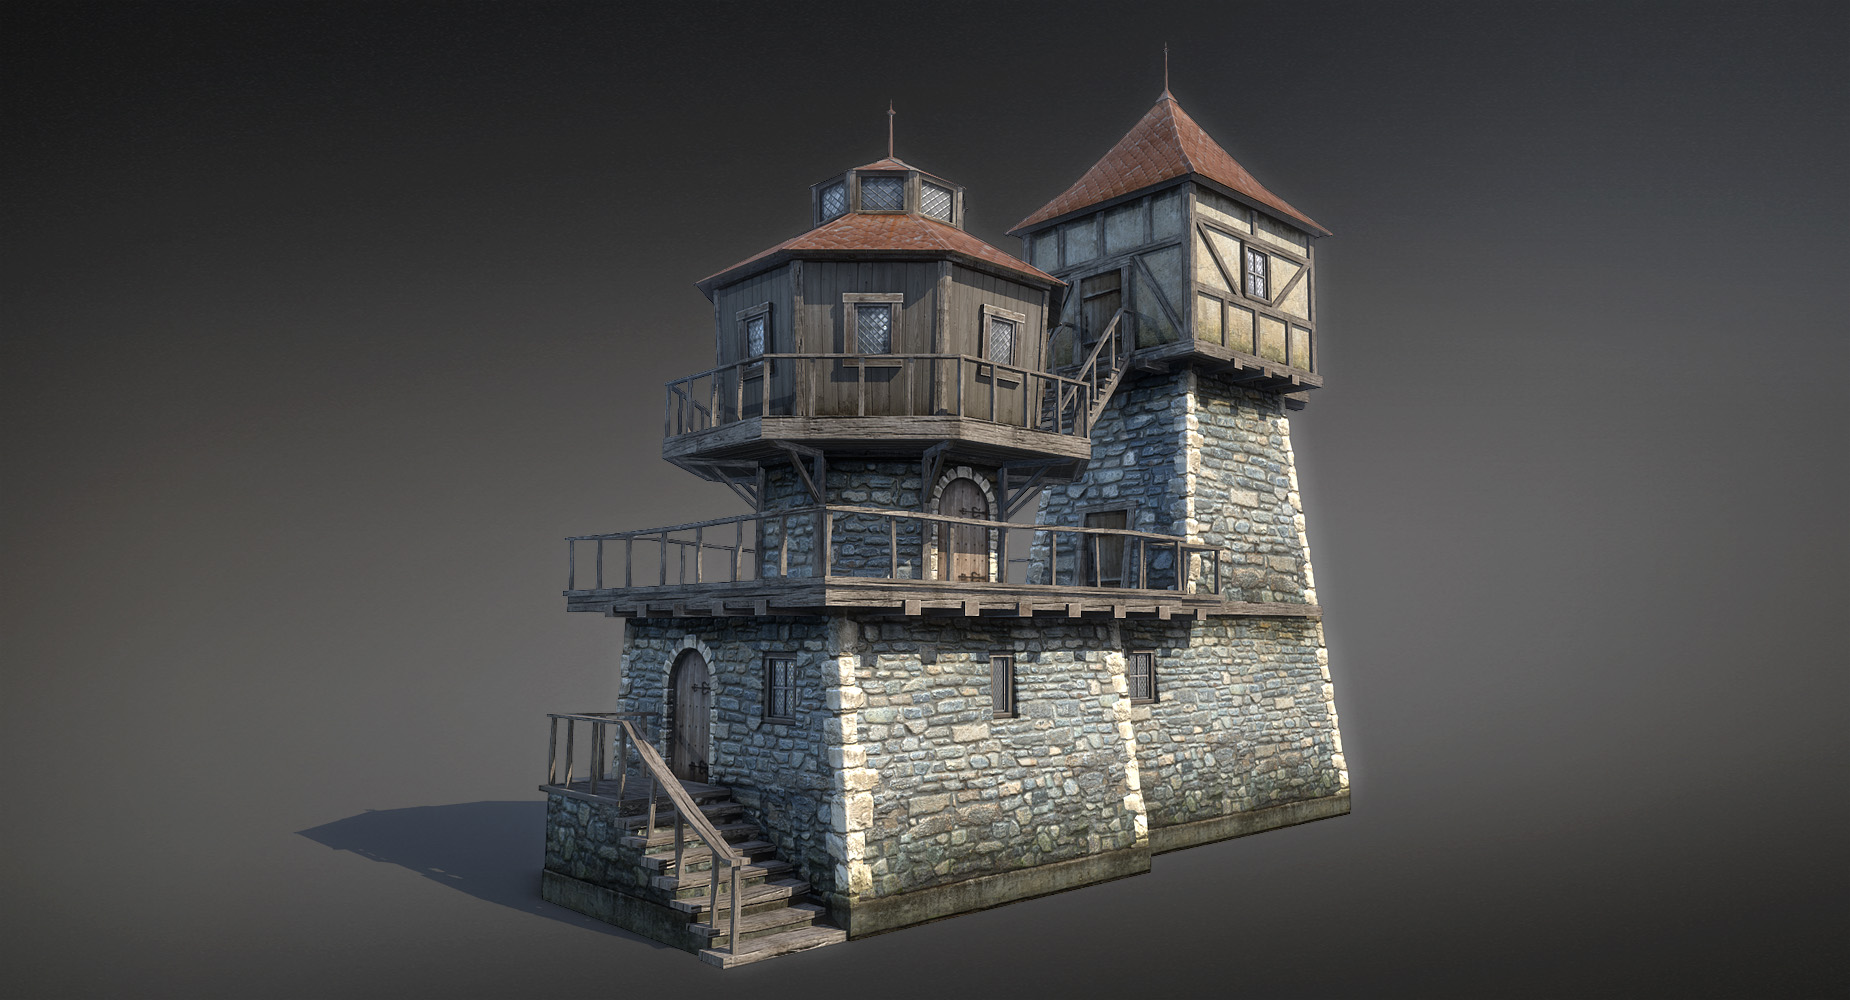 Fantasy House 04 3d Game Low Poly By Sergey Ryzhkov On